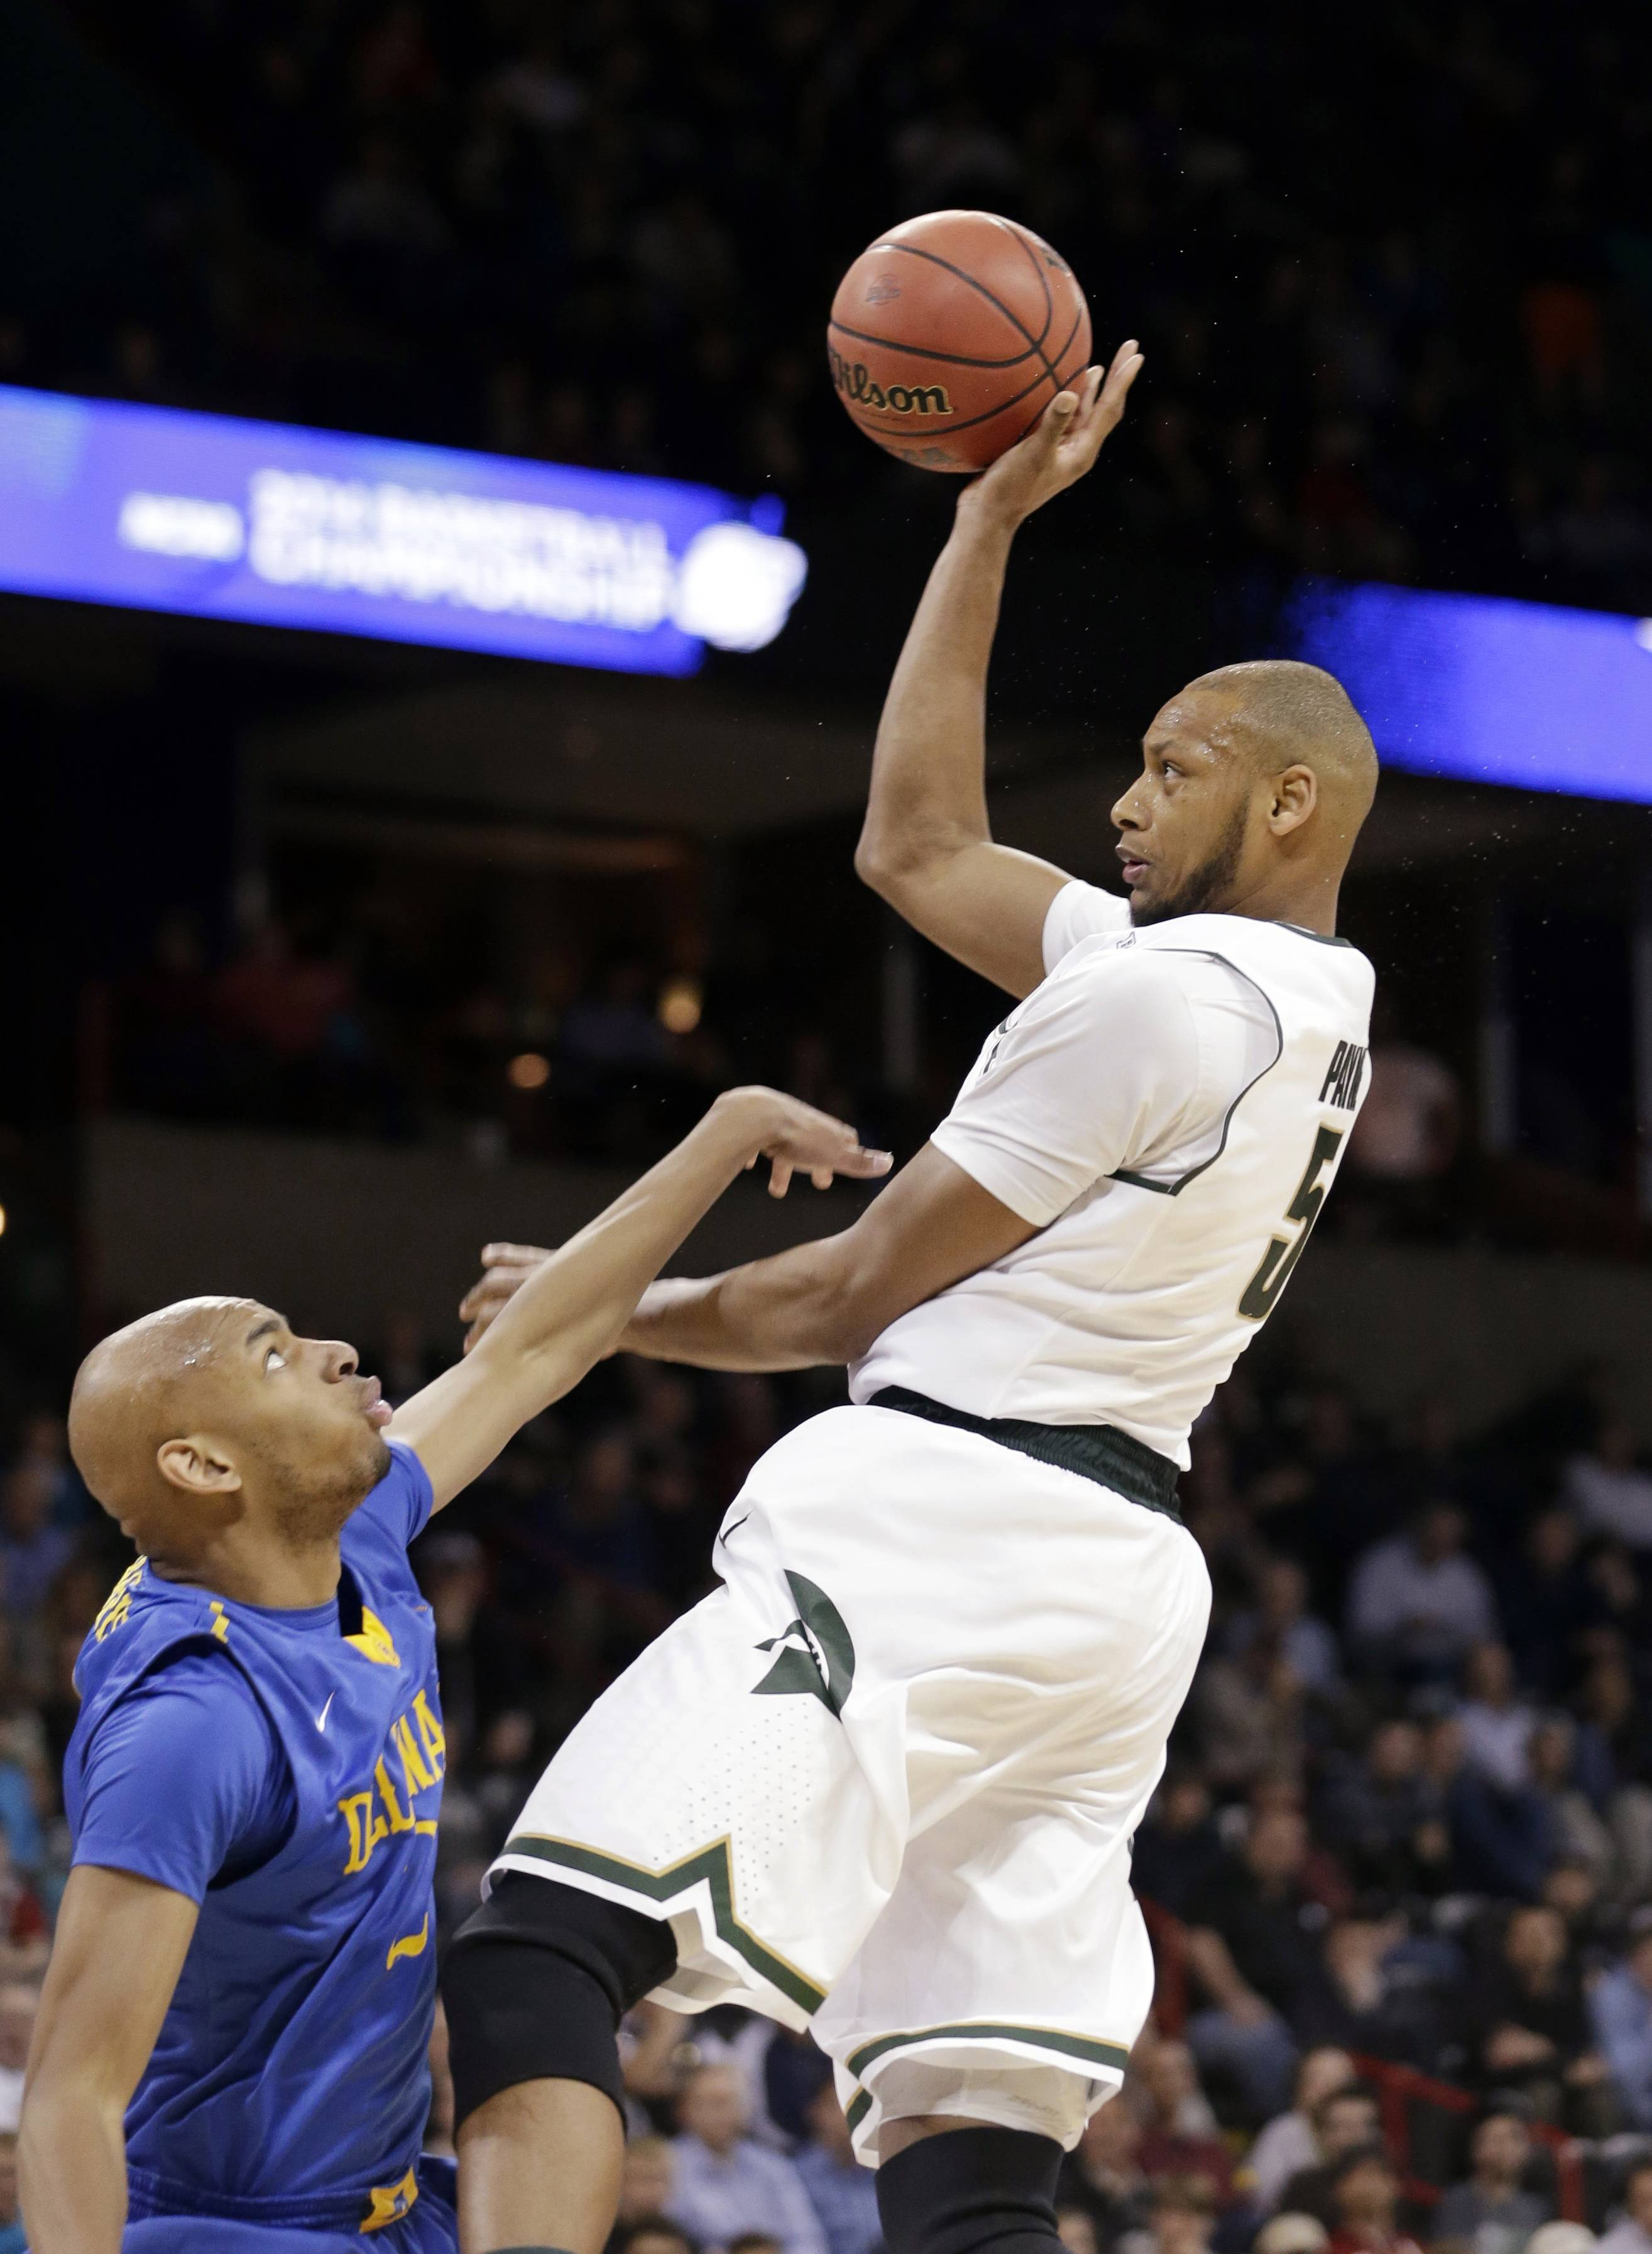 Payne scores 41, Michigan State tops Delaware 93-78